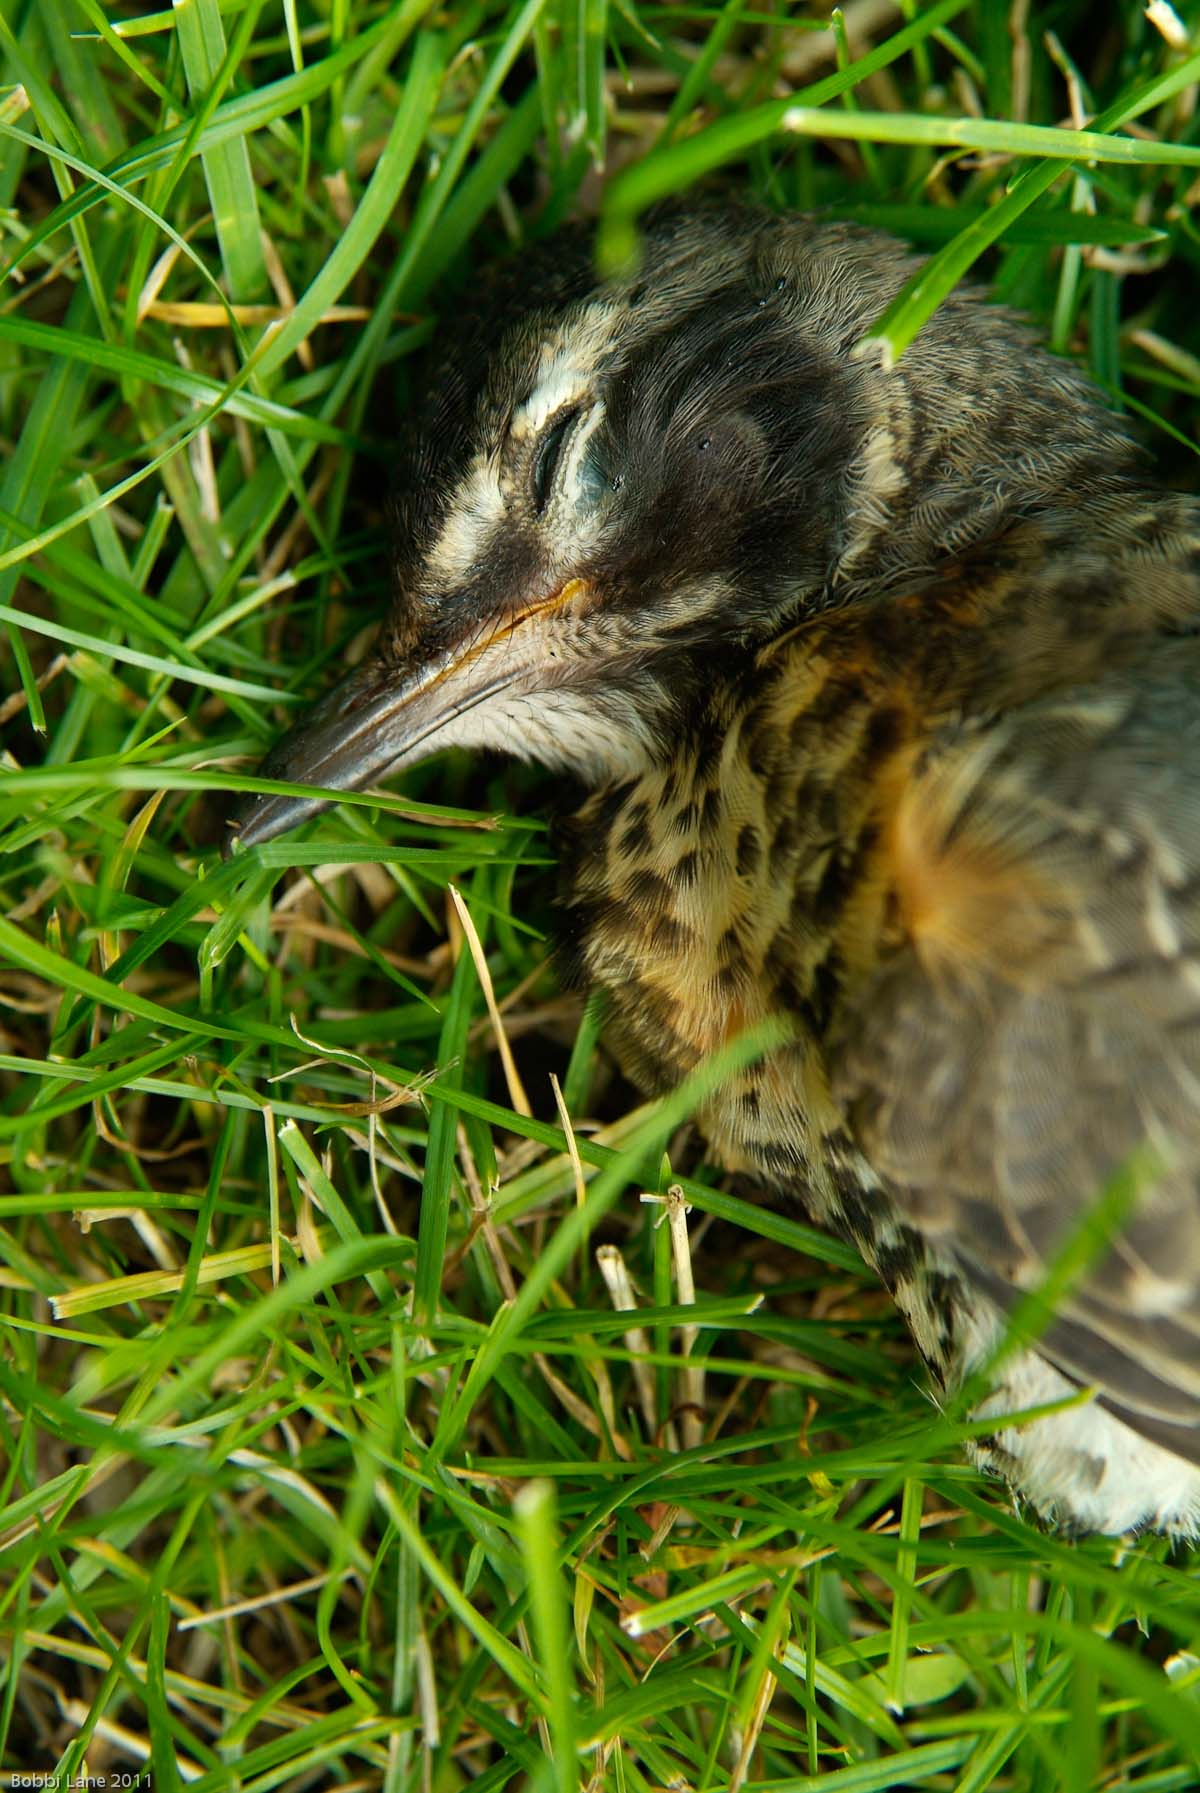 4-Robin in grass